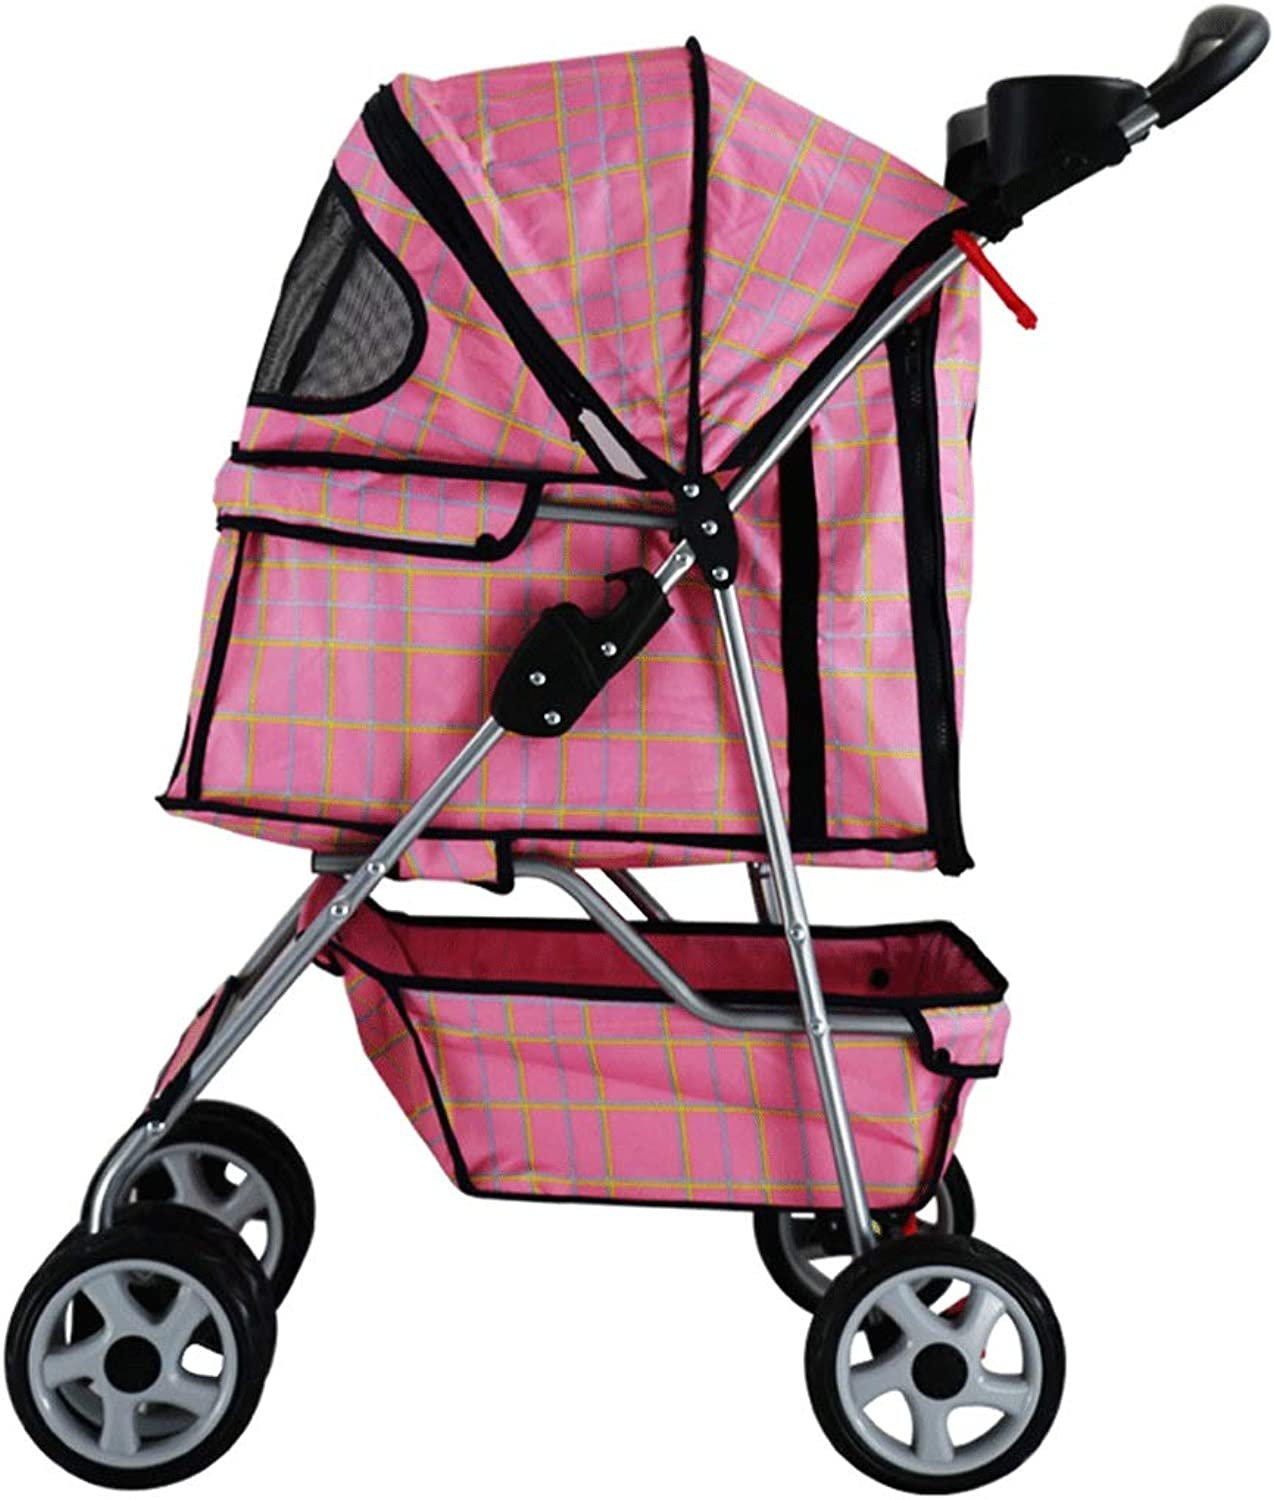 HAOCAI Pet Stroller With Wheel Portable Folding Cat And Dog Universal Outdoor Travel Pet Carrier, With Storage Basket  3 colors (color   B)